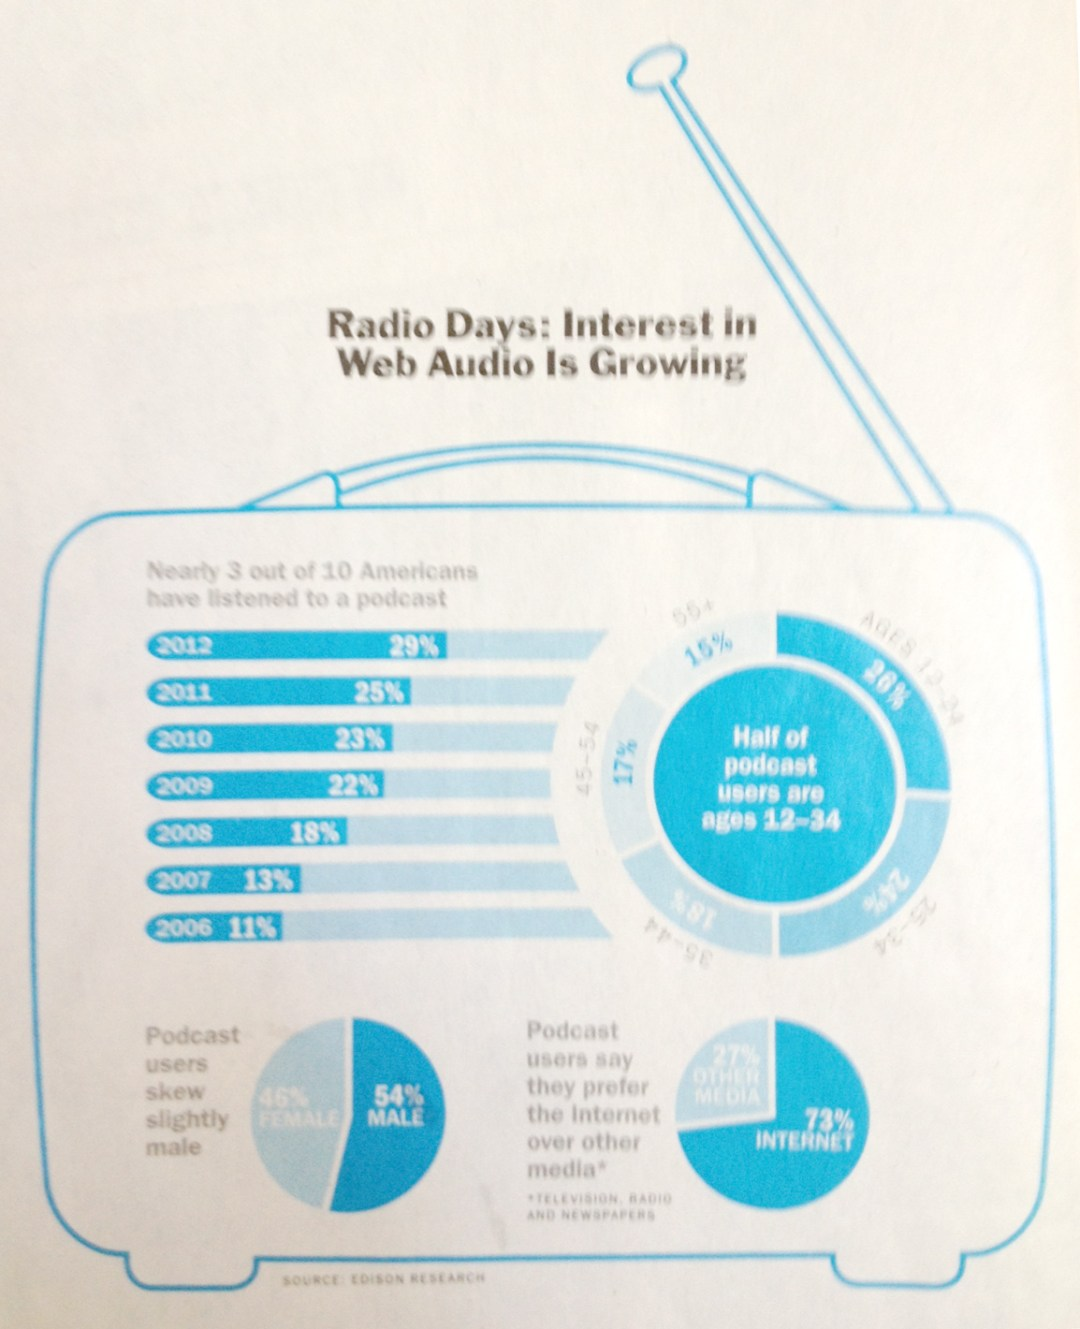 Attention Market Share Growth of Podcasting